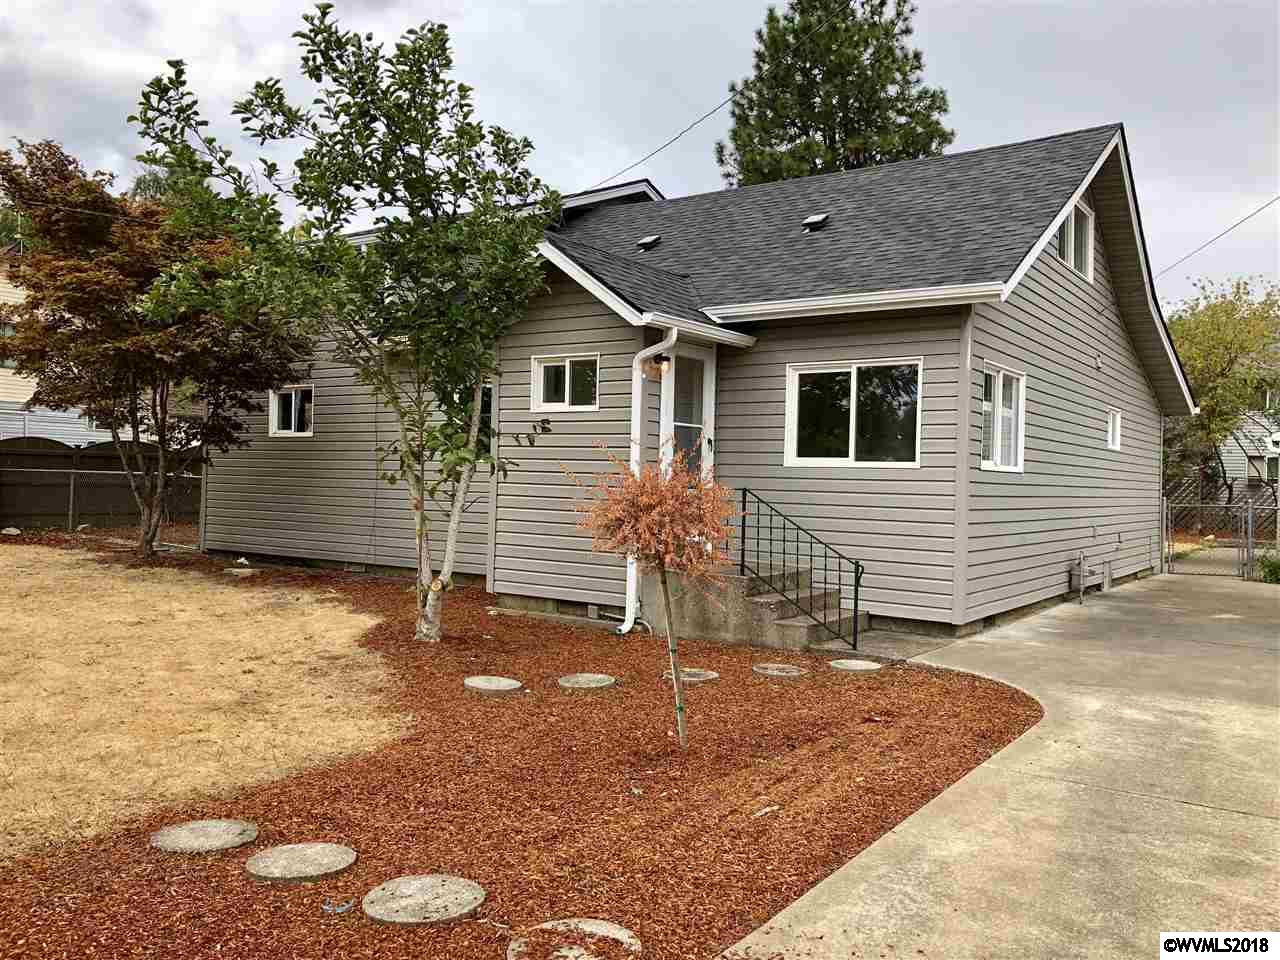 368 Se Hankel Dallas, OR 97338